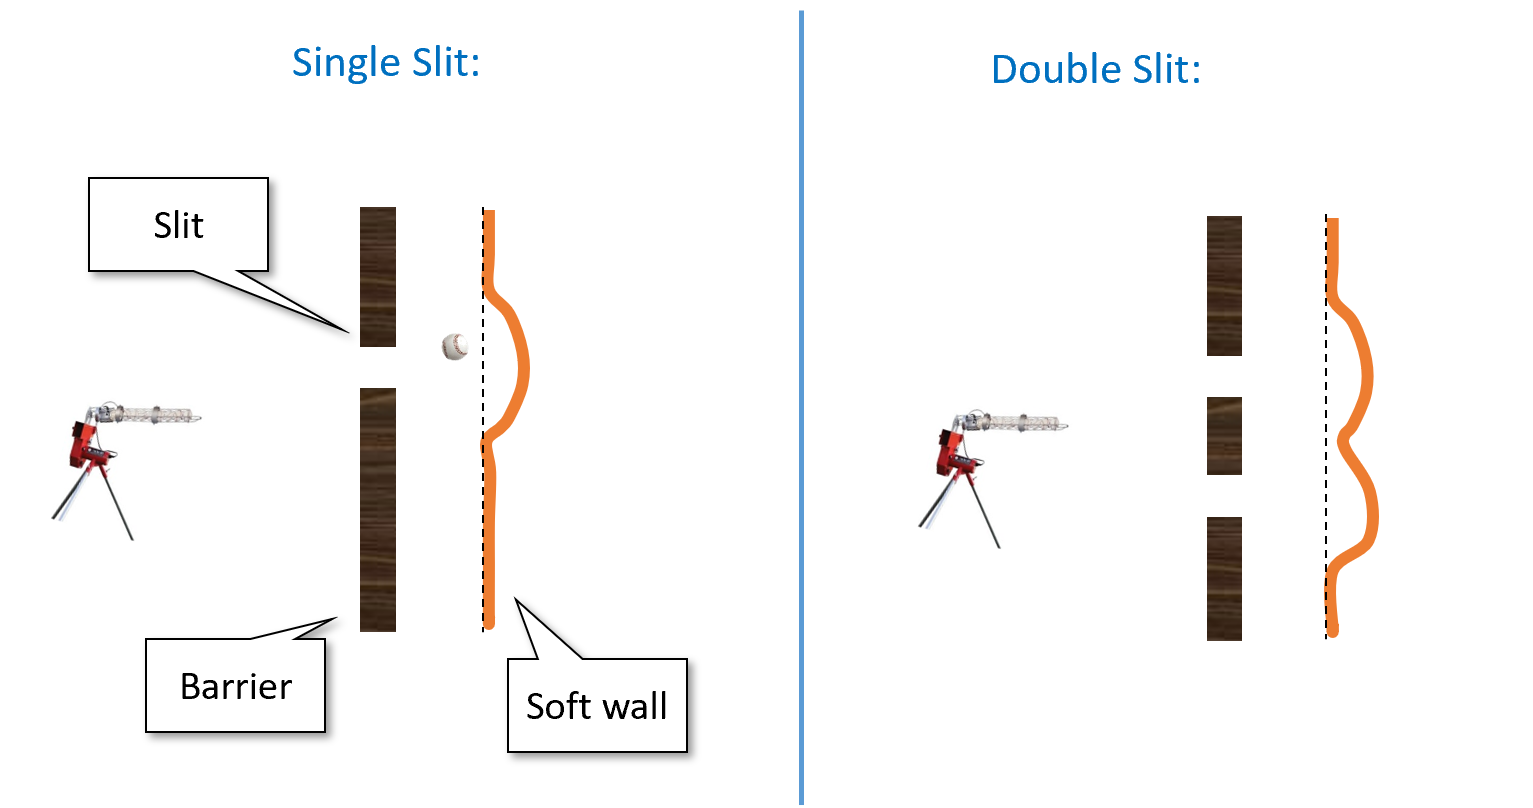 """In the """"double baseball experiment"""" we shoot baseballs from a gun at a soft wall through a hard barrier that has one or two slits open in it. There is only """"constructive interference"""" in the sense that the dent in each position in the wall when both slits are open is the sum of the dents when each slit is open on its own."""